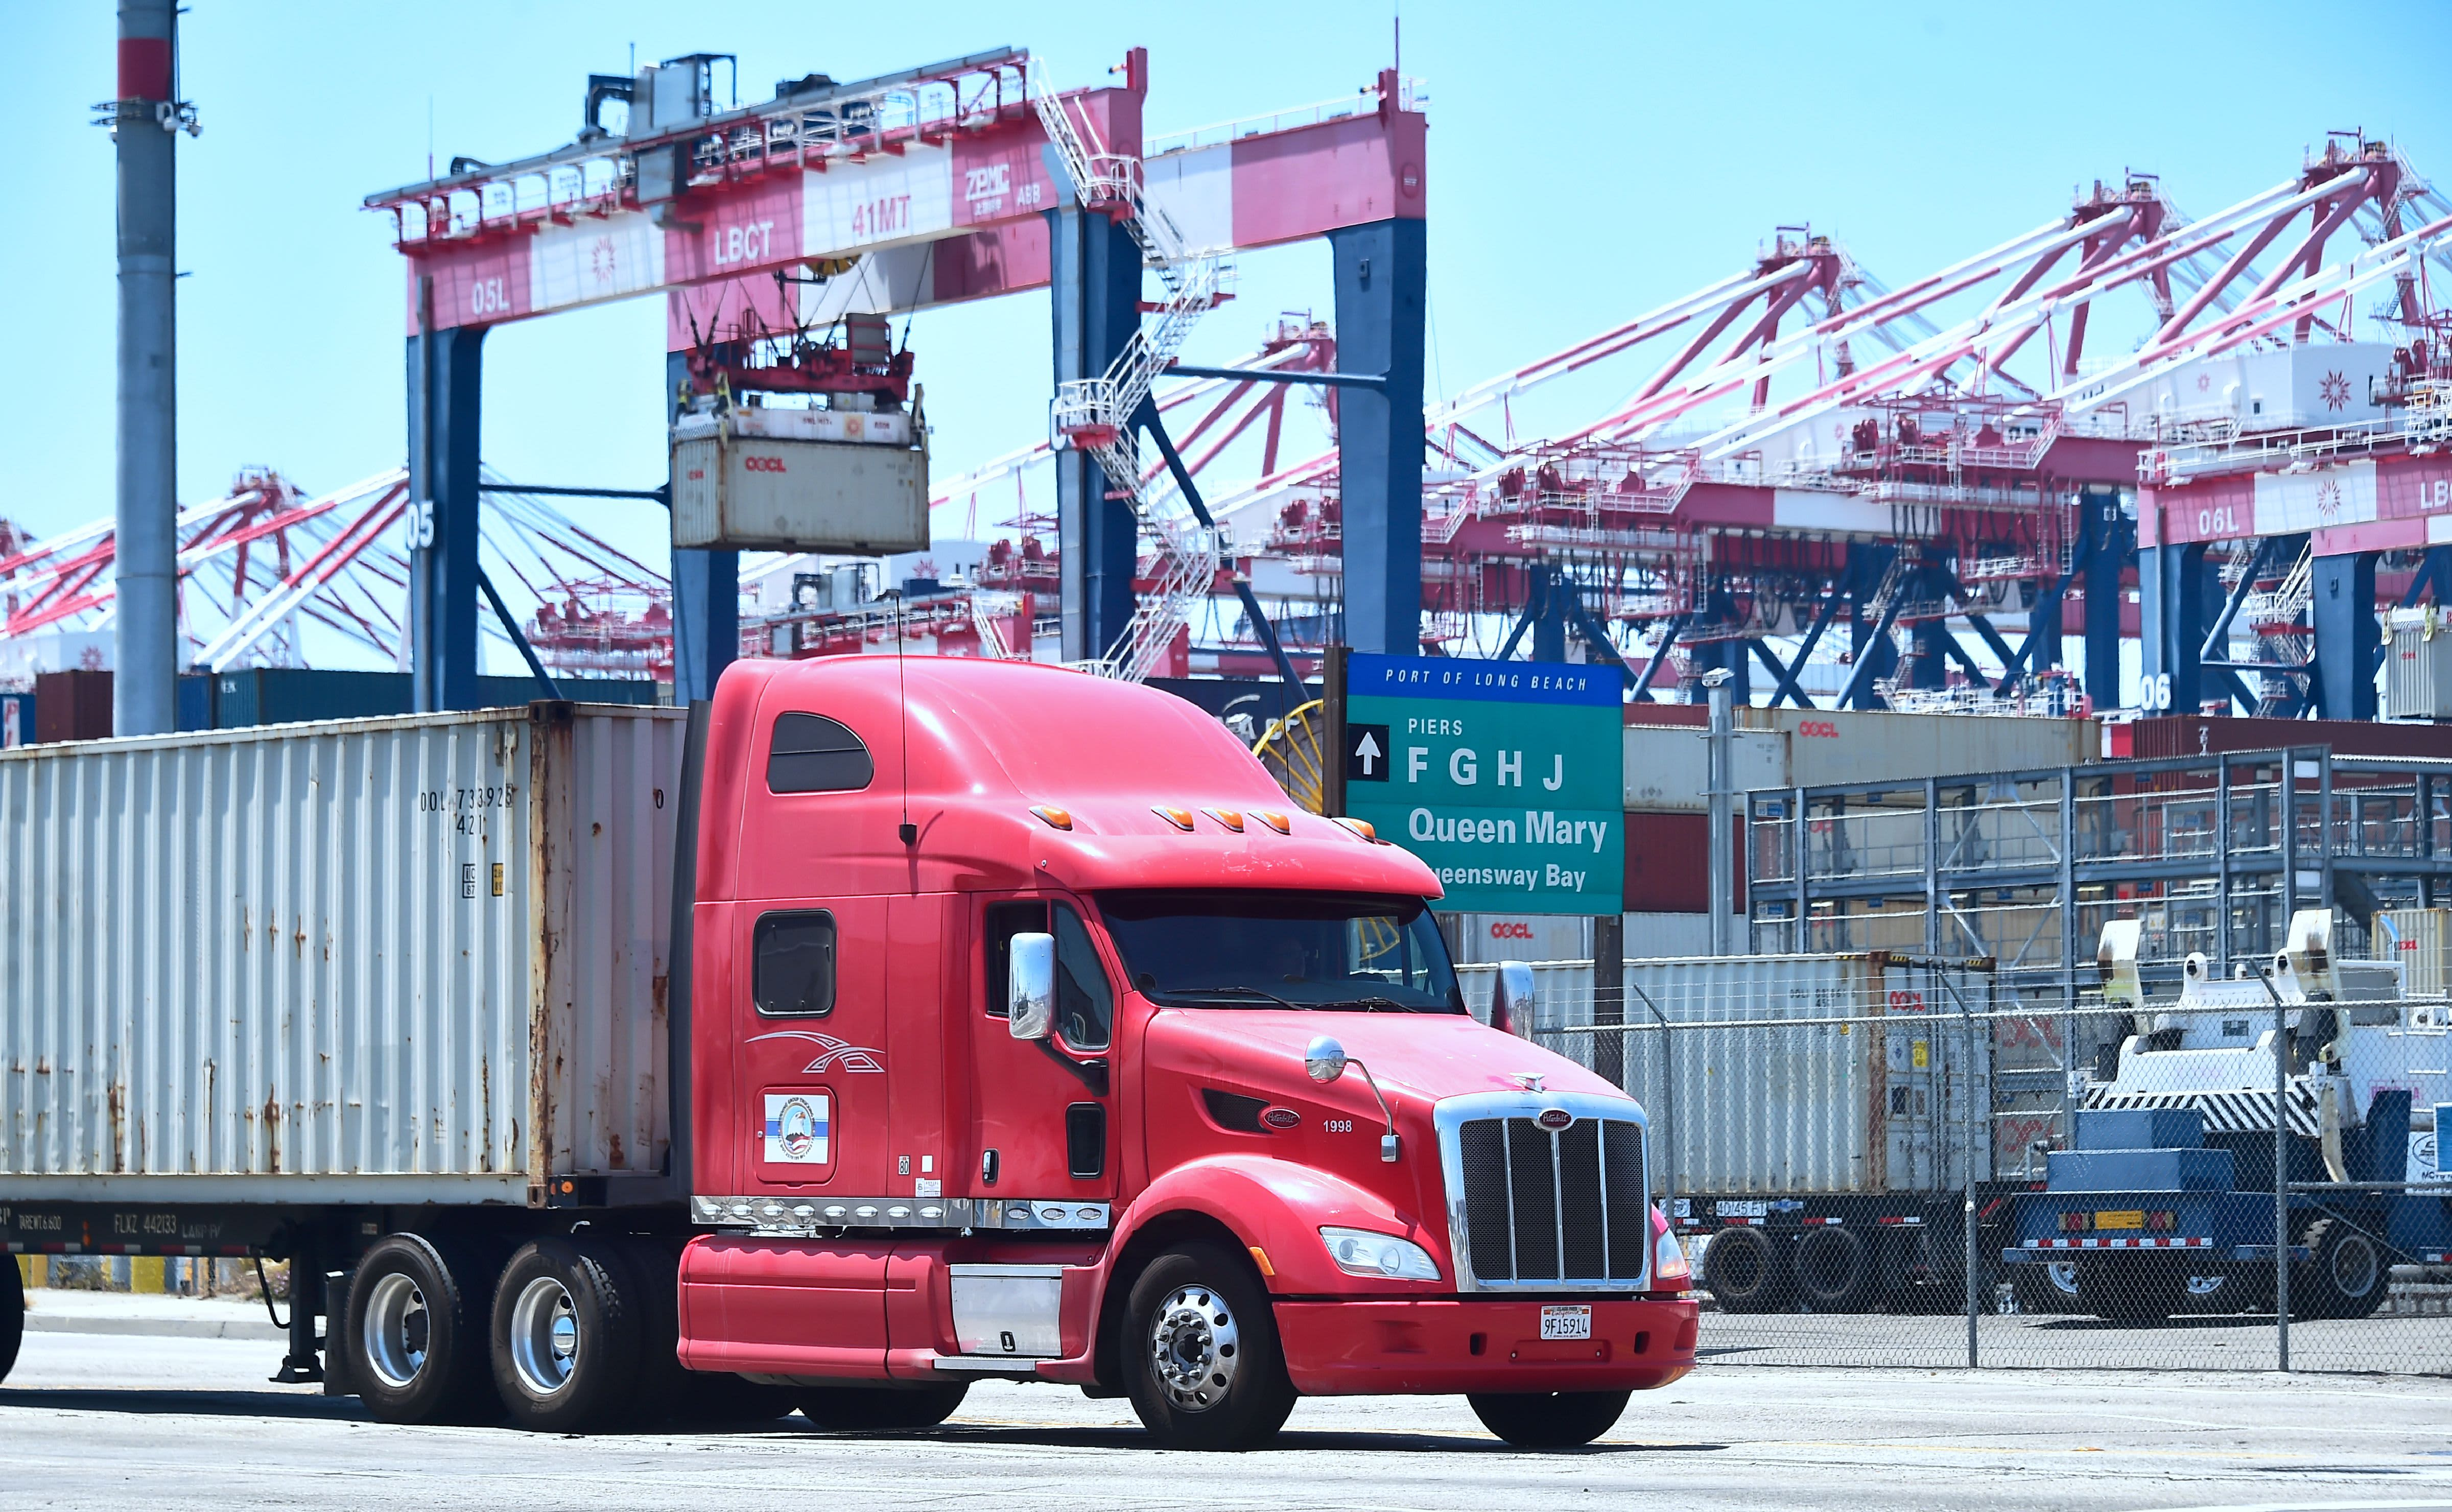 This under-the-radar freight indicator is raising concerns that the U.S. economy is slowing